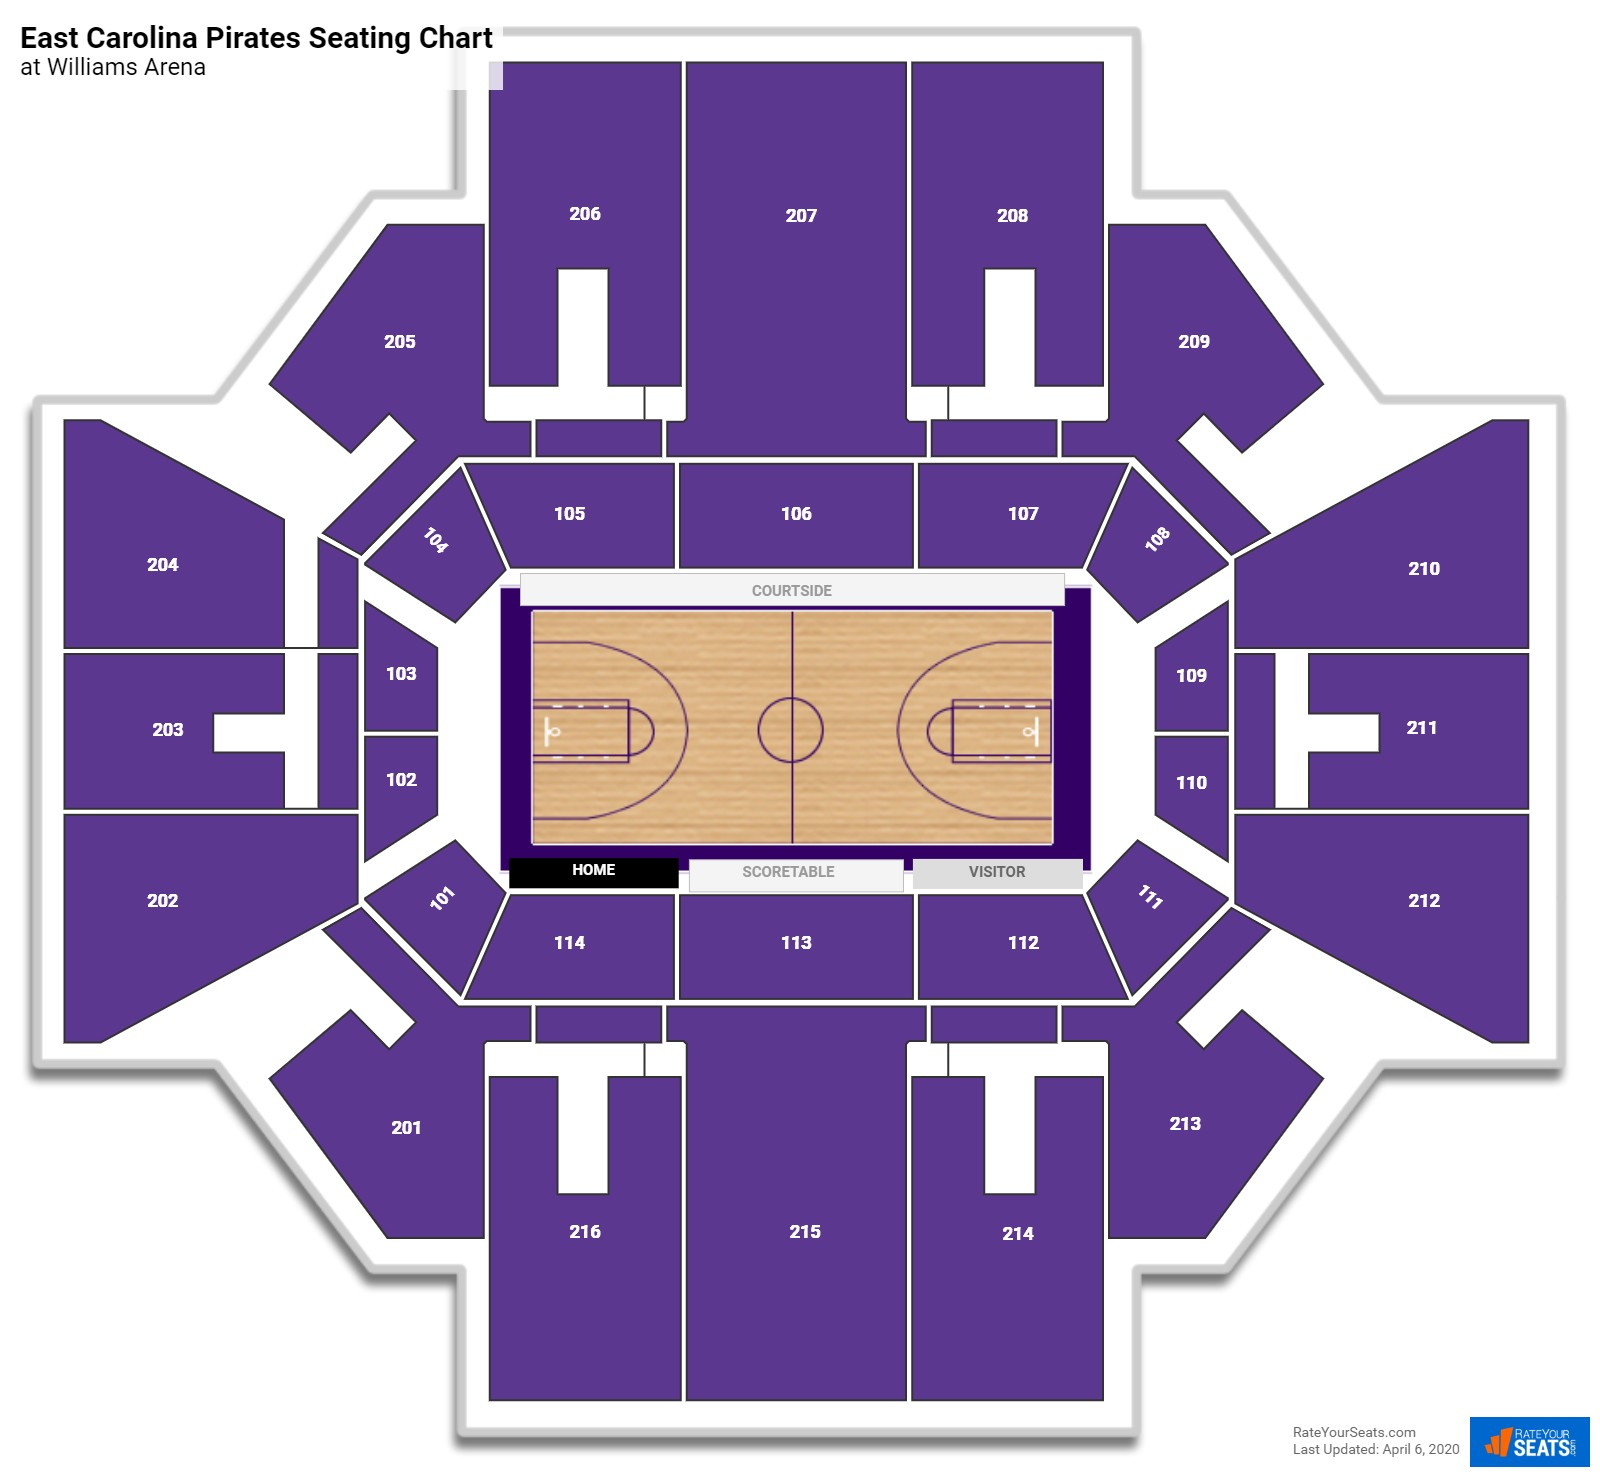 East Carolina Basketball Seating Chart